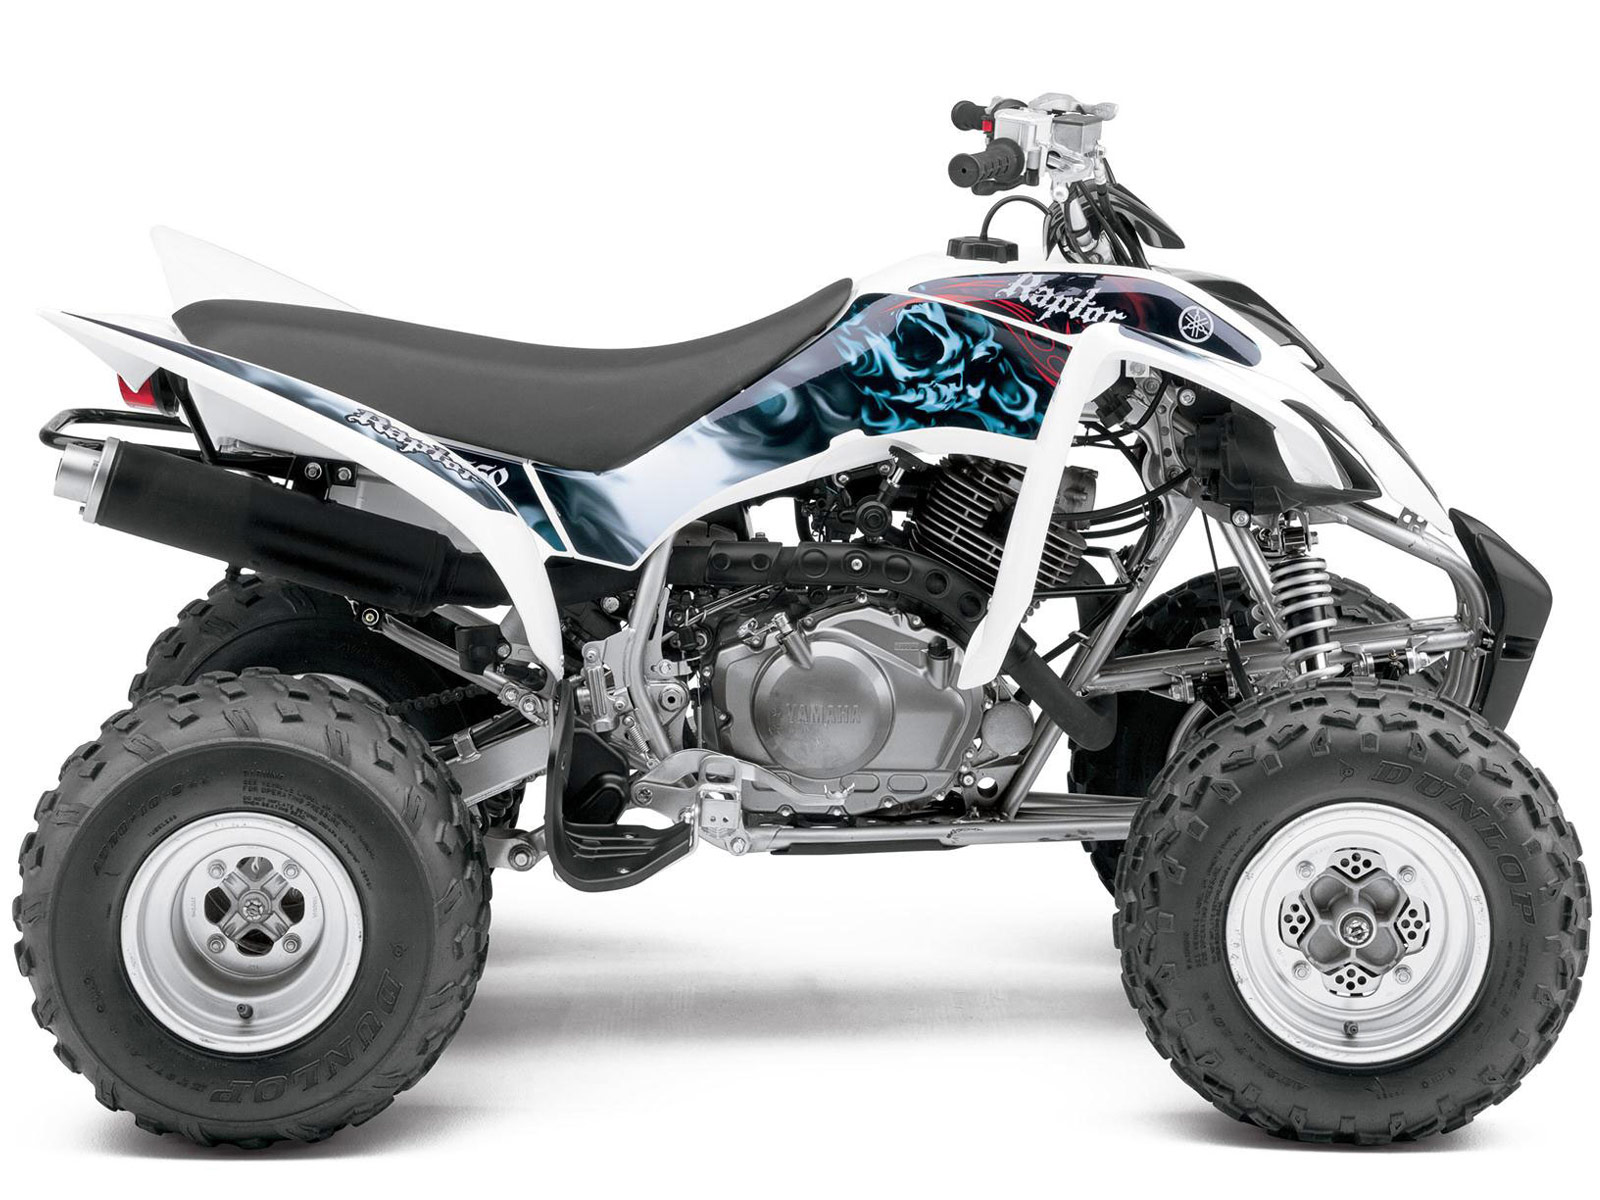 2013 raptor 350 yamaha atv review pictures and specifications. Black Bedroom Furniture Sets. Home Design Ideas